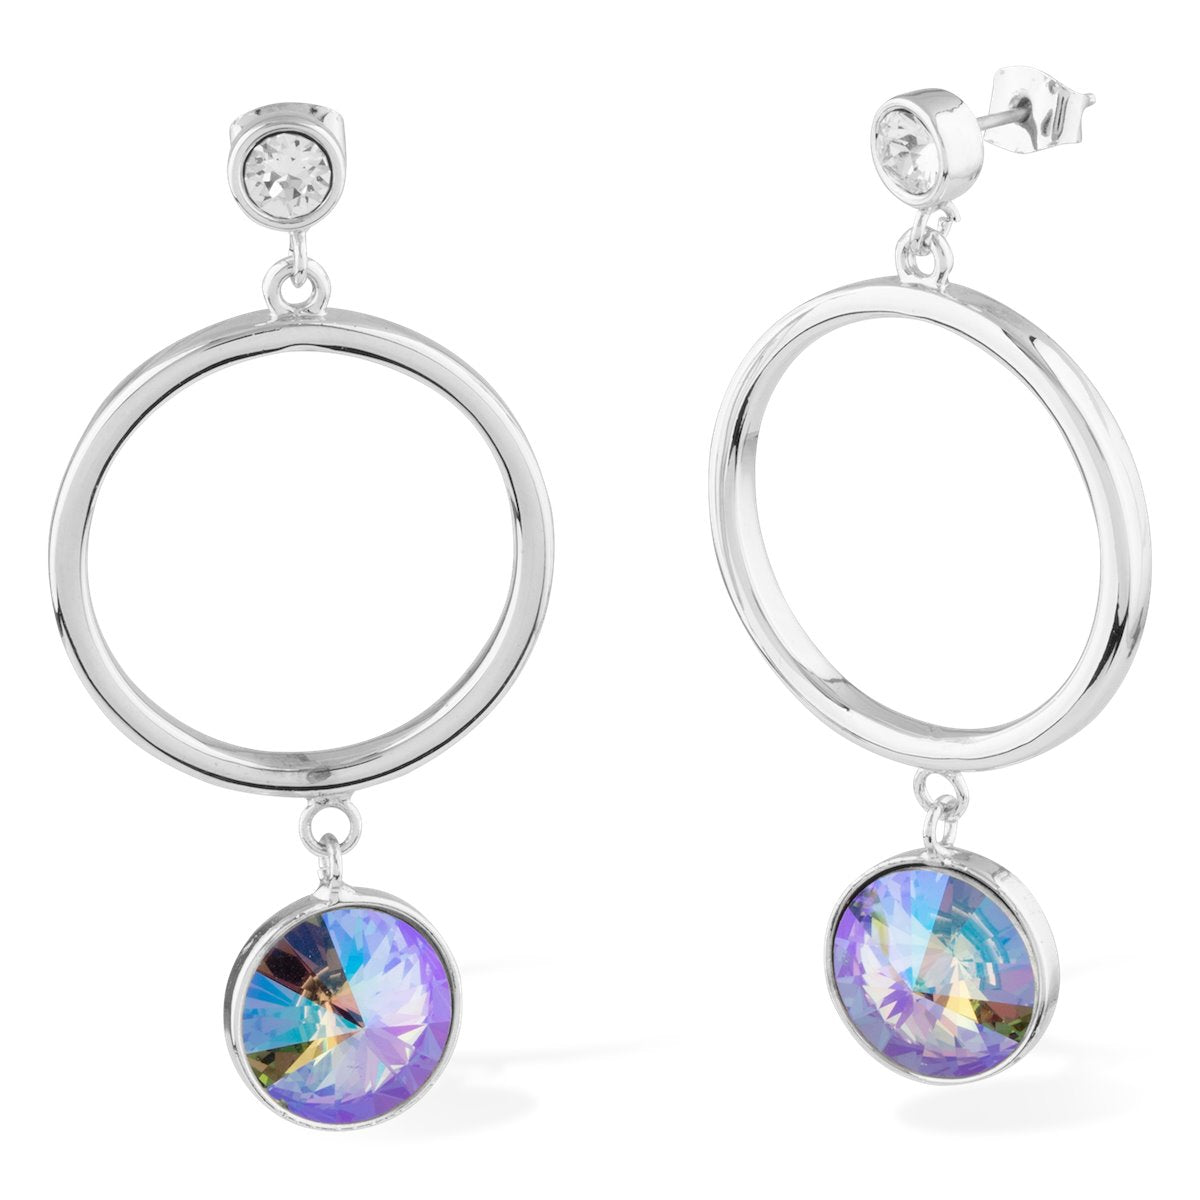 Apollo Earrings Forevercrystals Paradise Shine